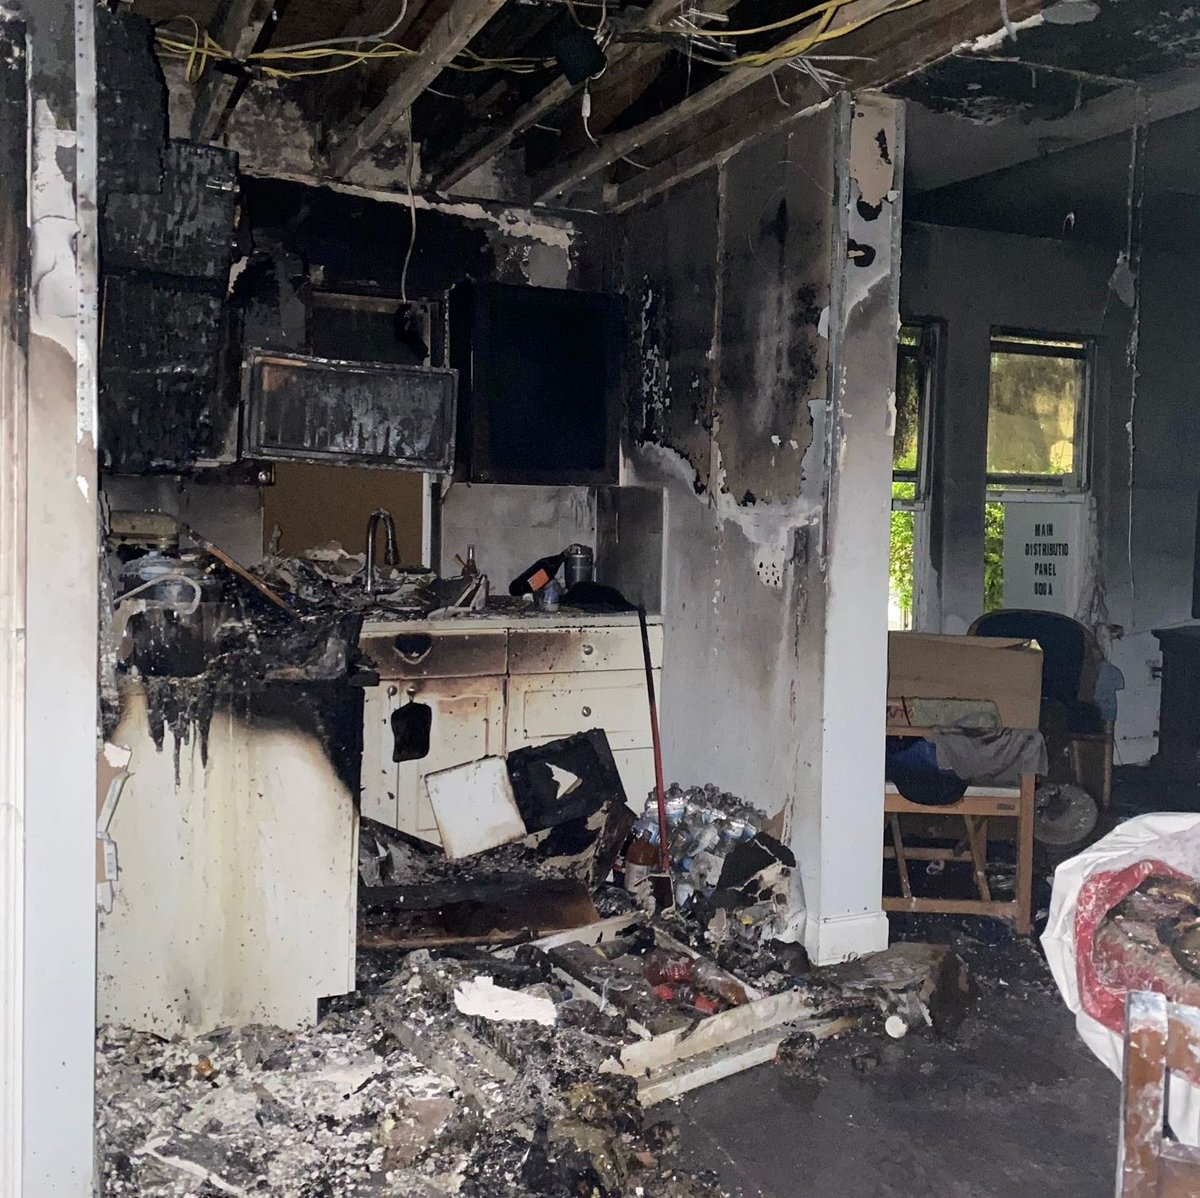 Another busy weekend for our Red Cross teams responding to home fires across the region. This apartment fire in Little Havana impacted 14 people and now the Red Cross is helping them get back on their feet. #EmergenciesDontStop Photos provided by Natalee Collazo.